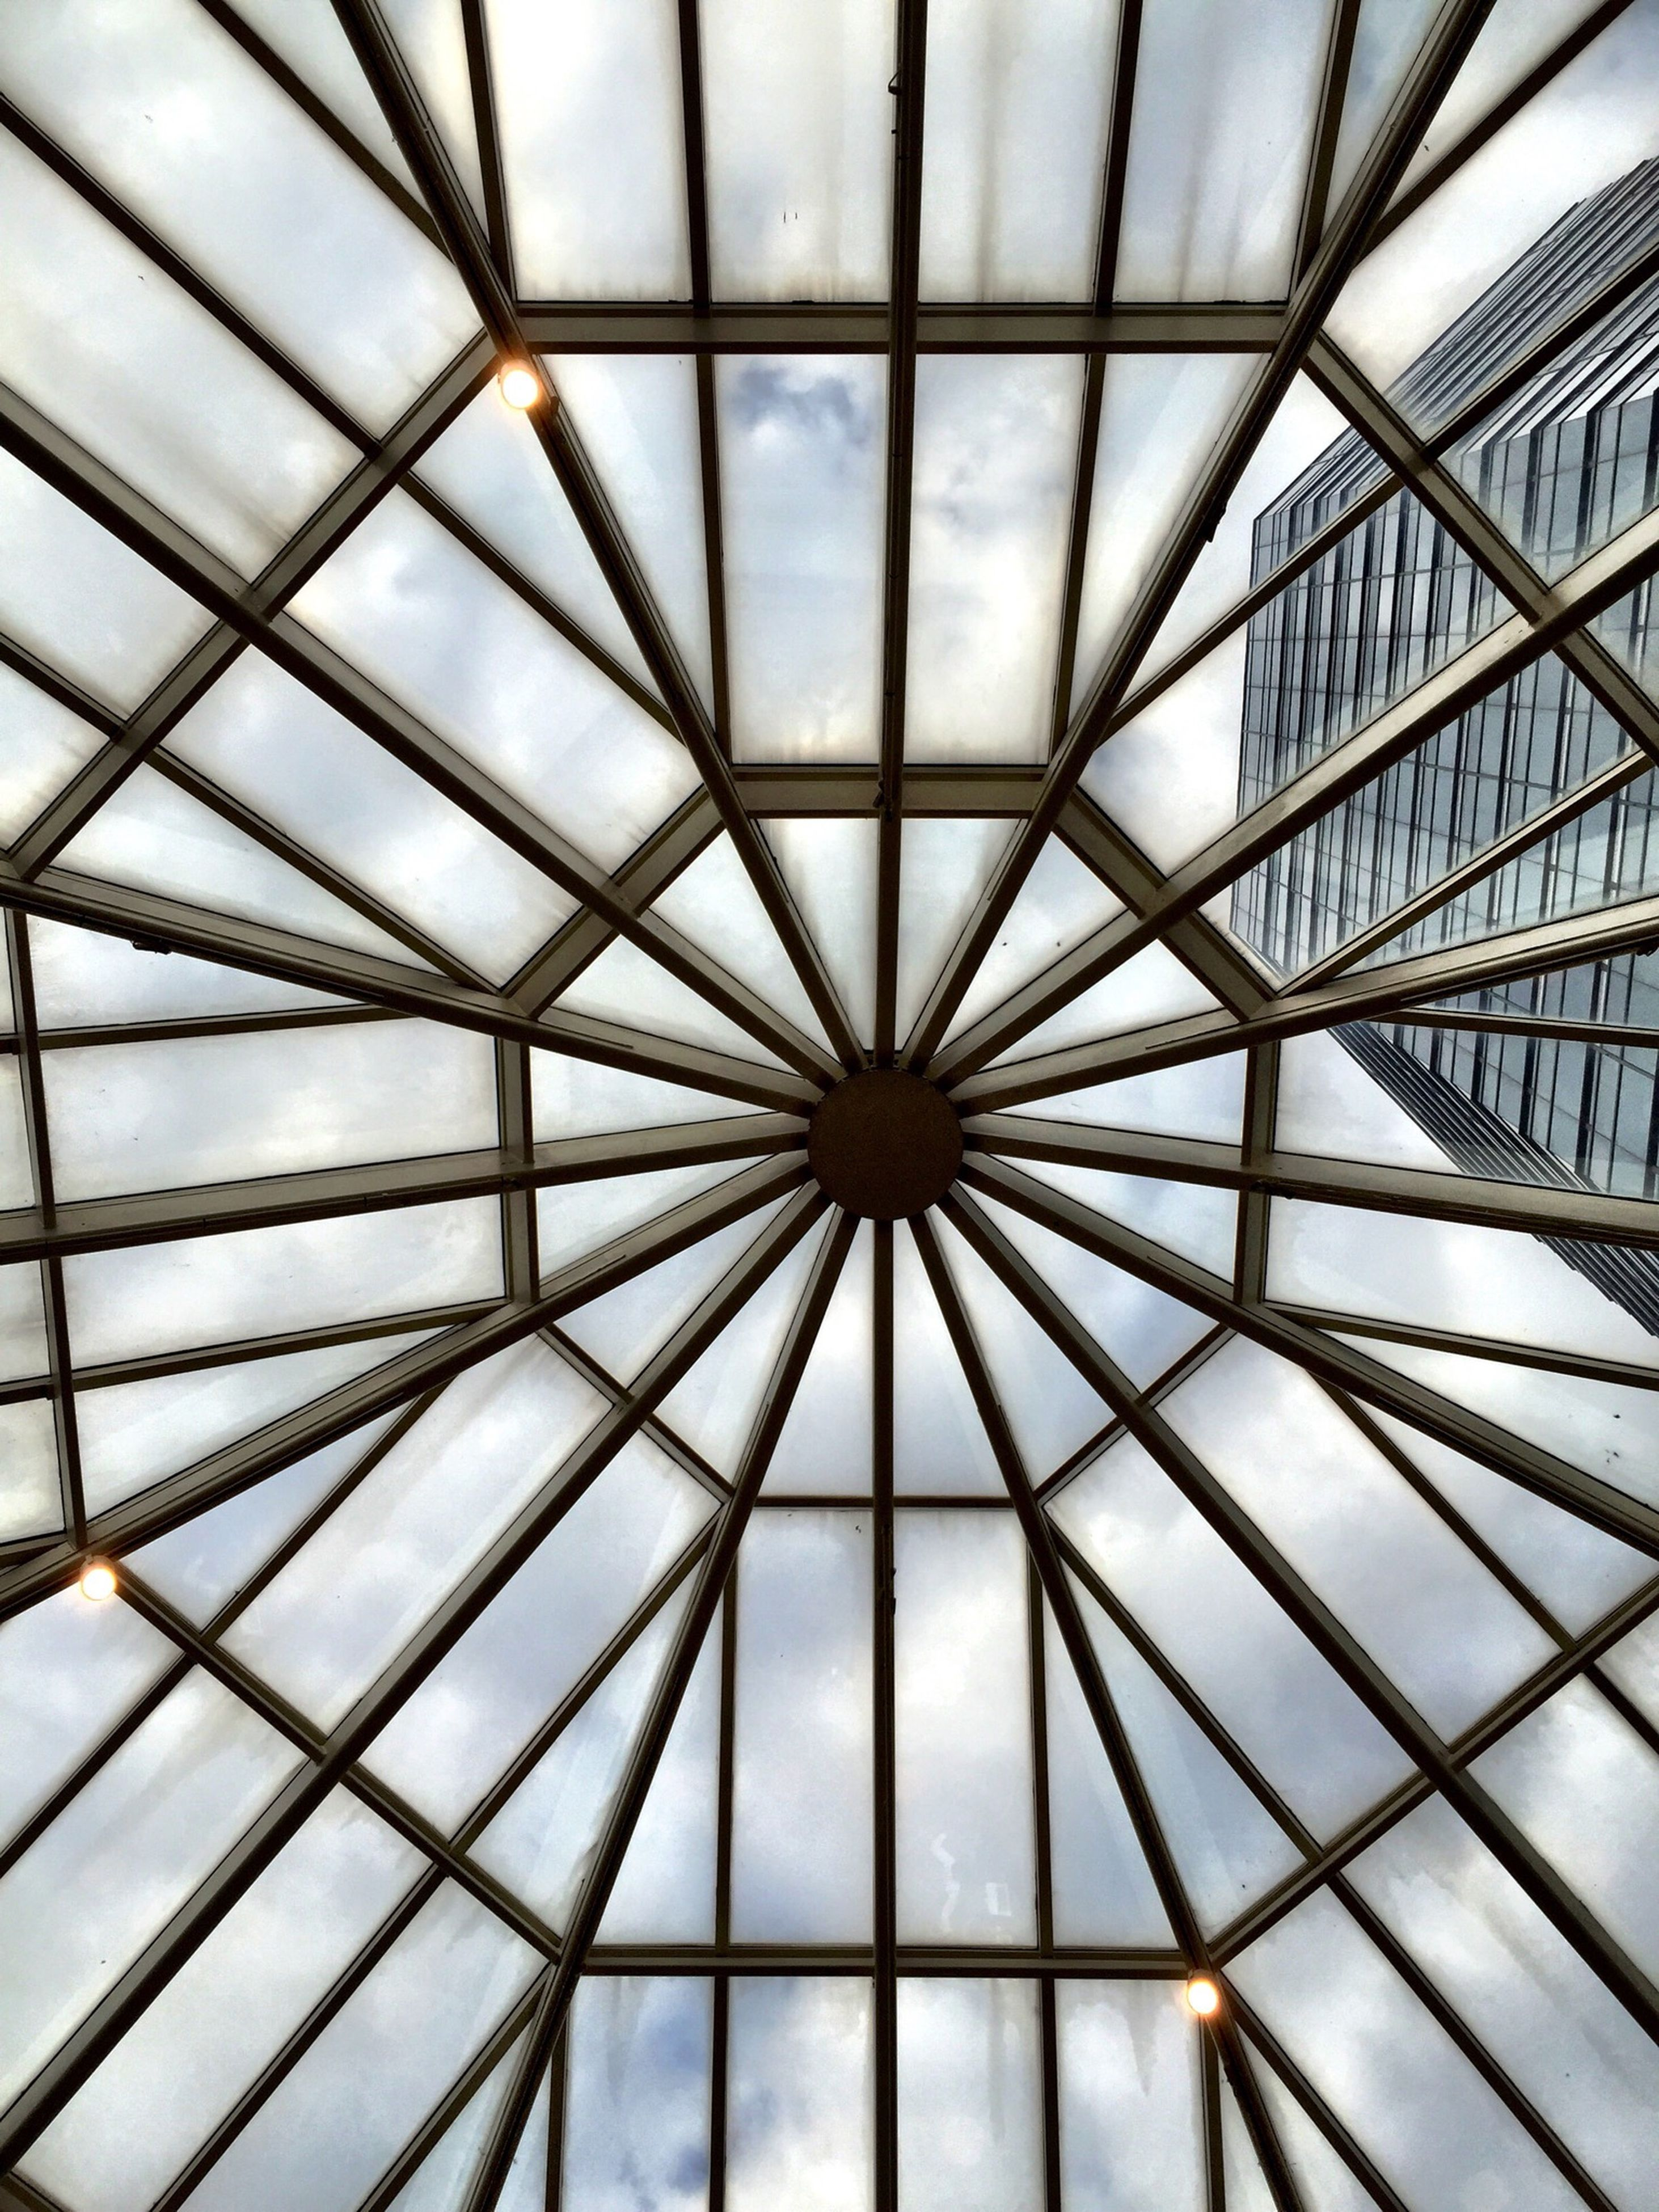 indoors, ceiling, pattern, architecture, low angle view, built structure, modern, directly below, design, full frame, geometric shape, architectural feature, skylight, glass - material, backgrounds, repetition, shape, no people, diminishing perspective, abstract